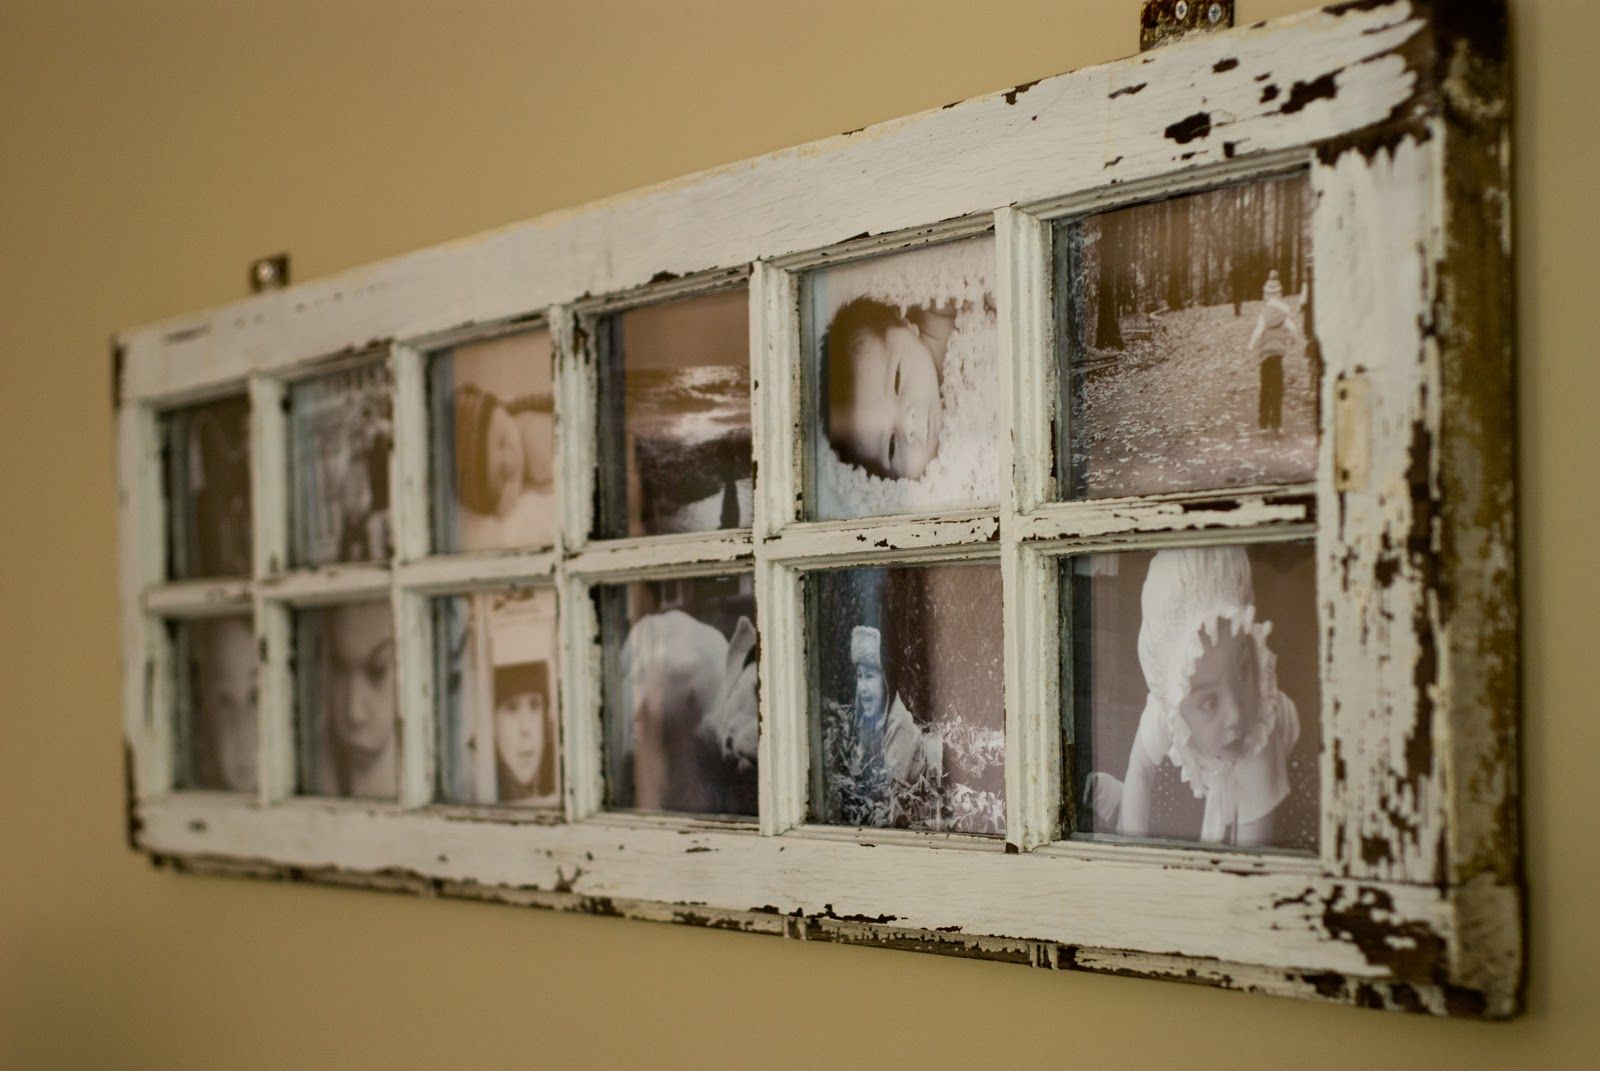 Ideas for old window frames  old window for pictures  speilvindudør  pinterest  window